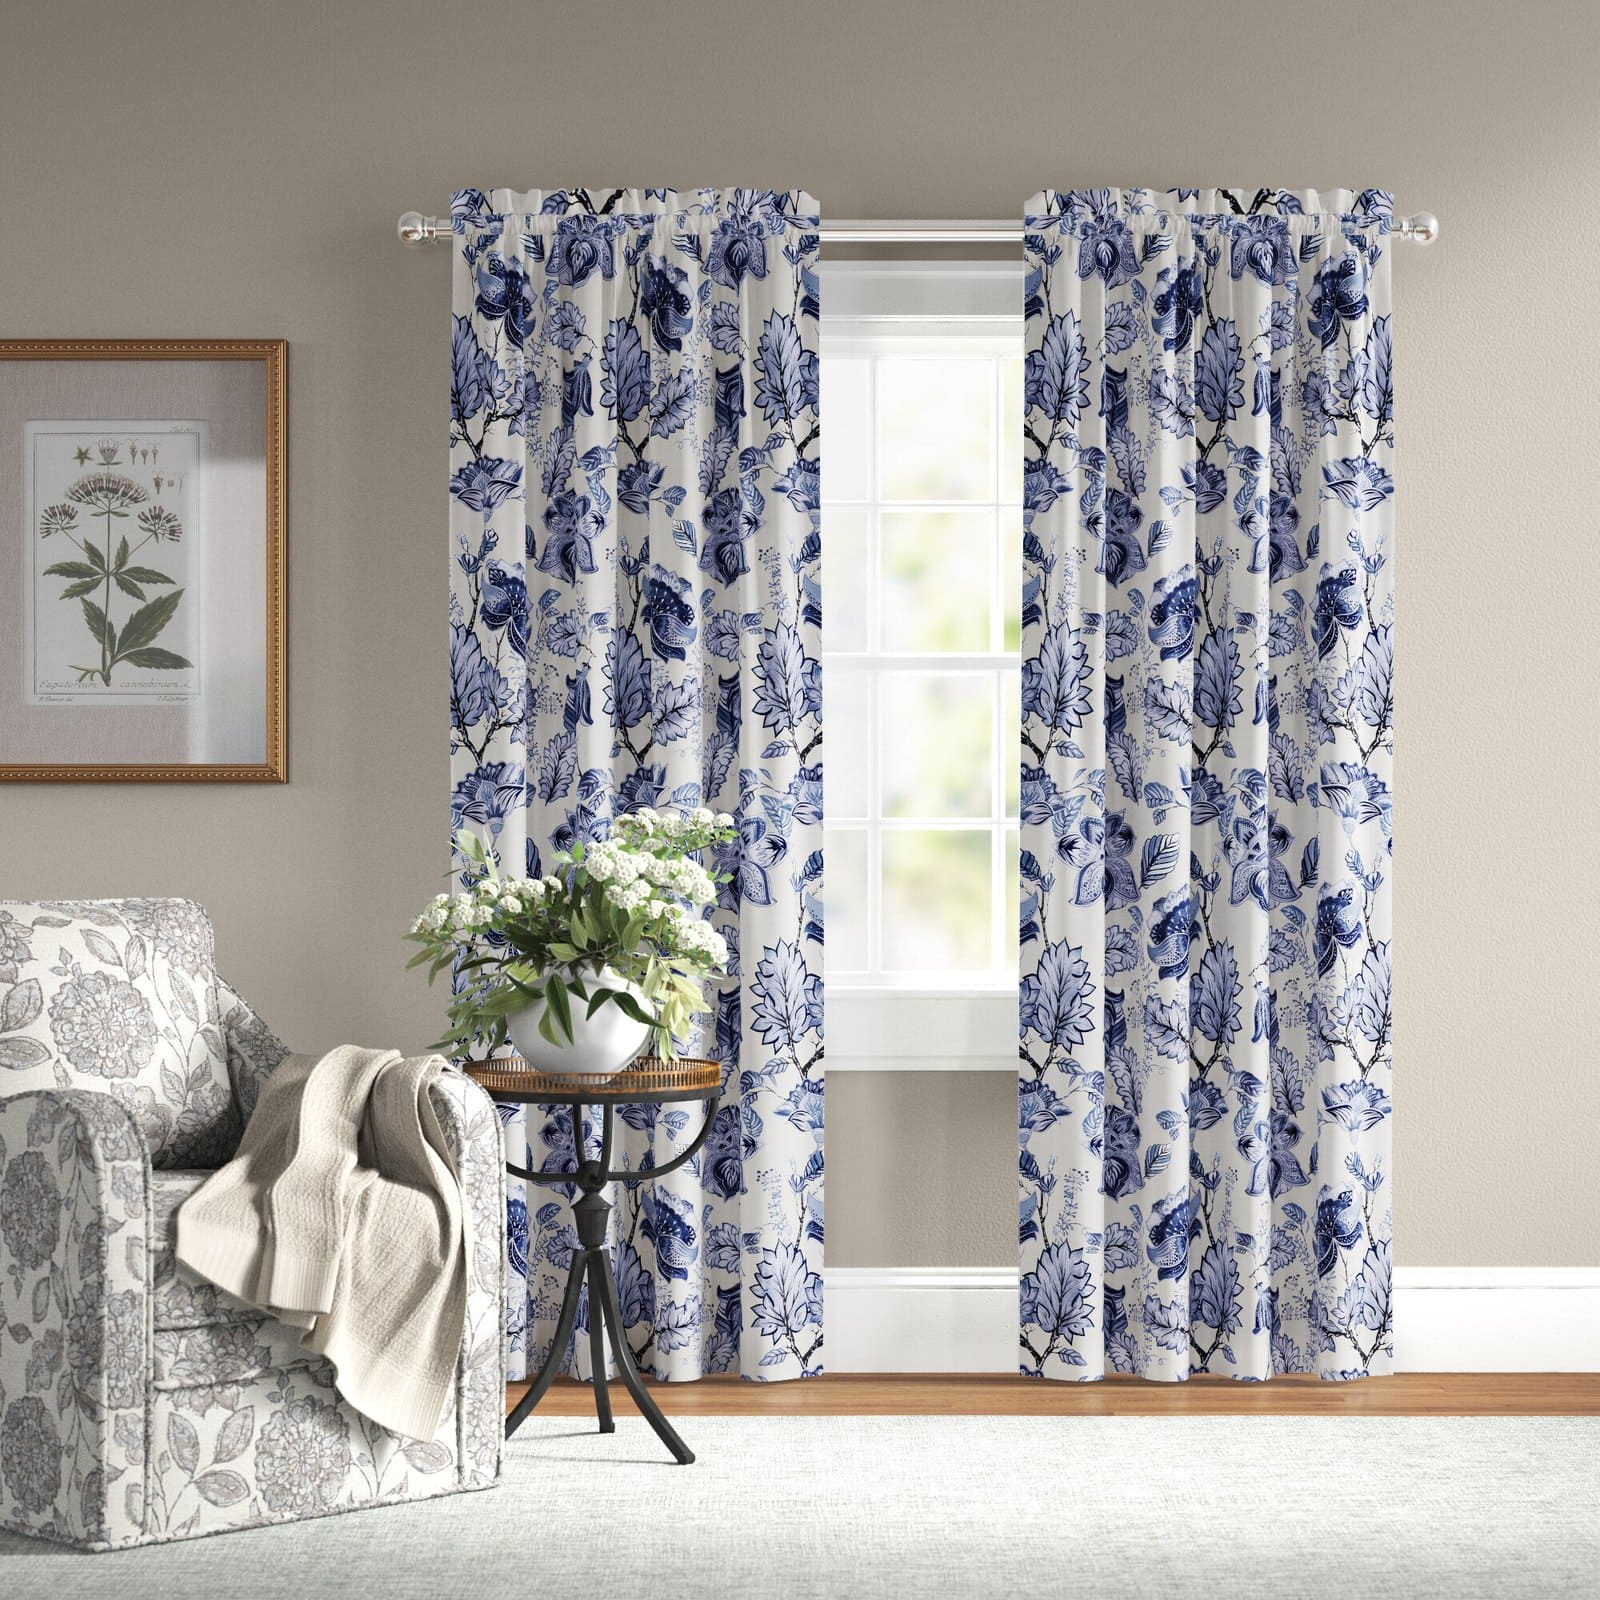 Floral Thermal Curtains